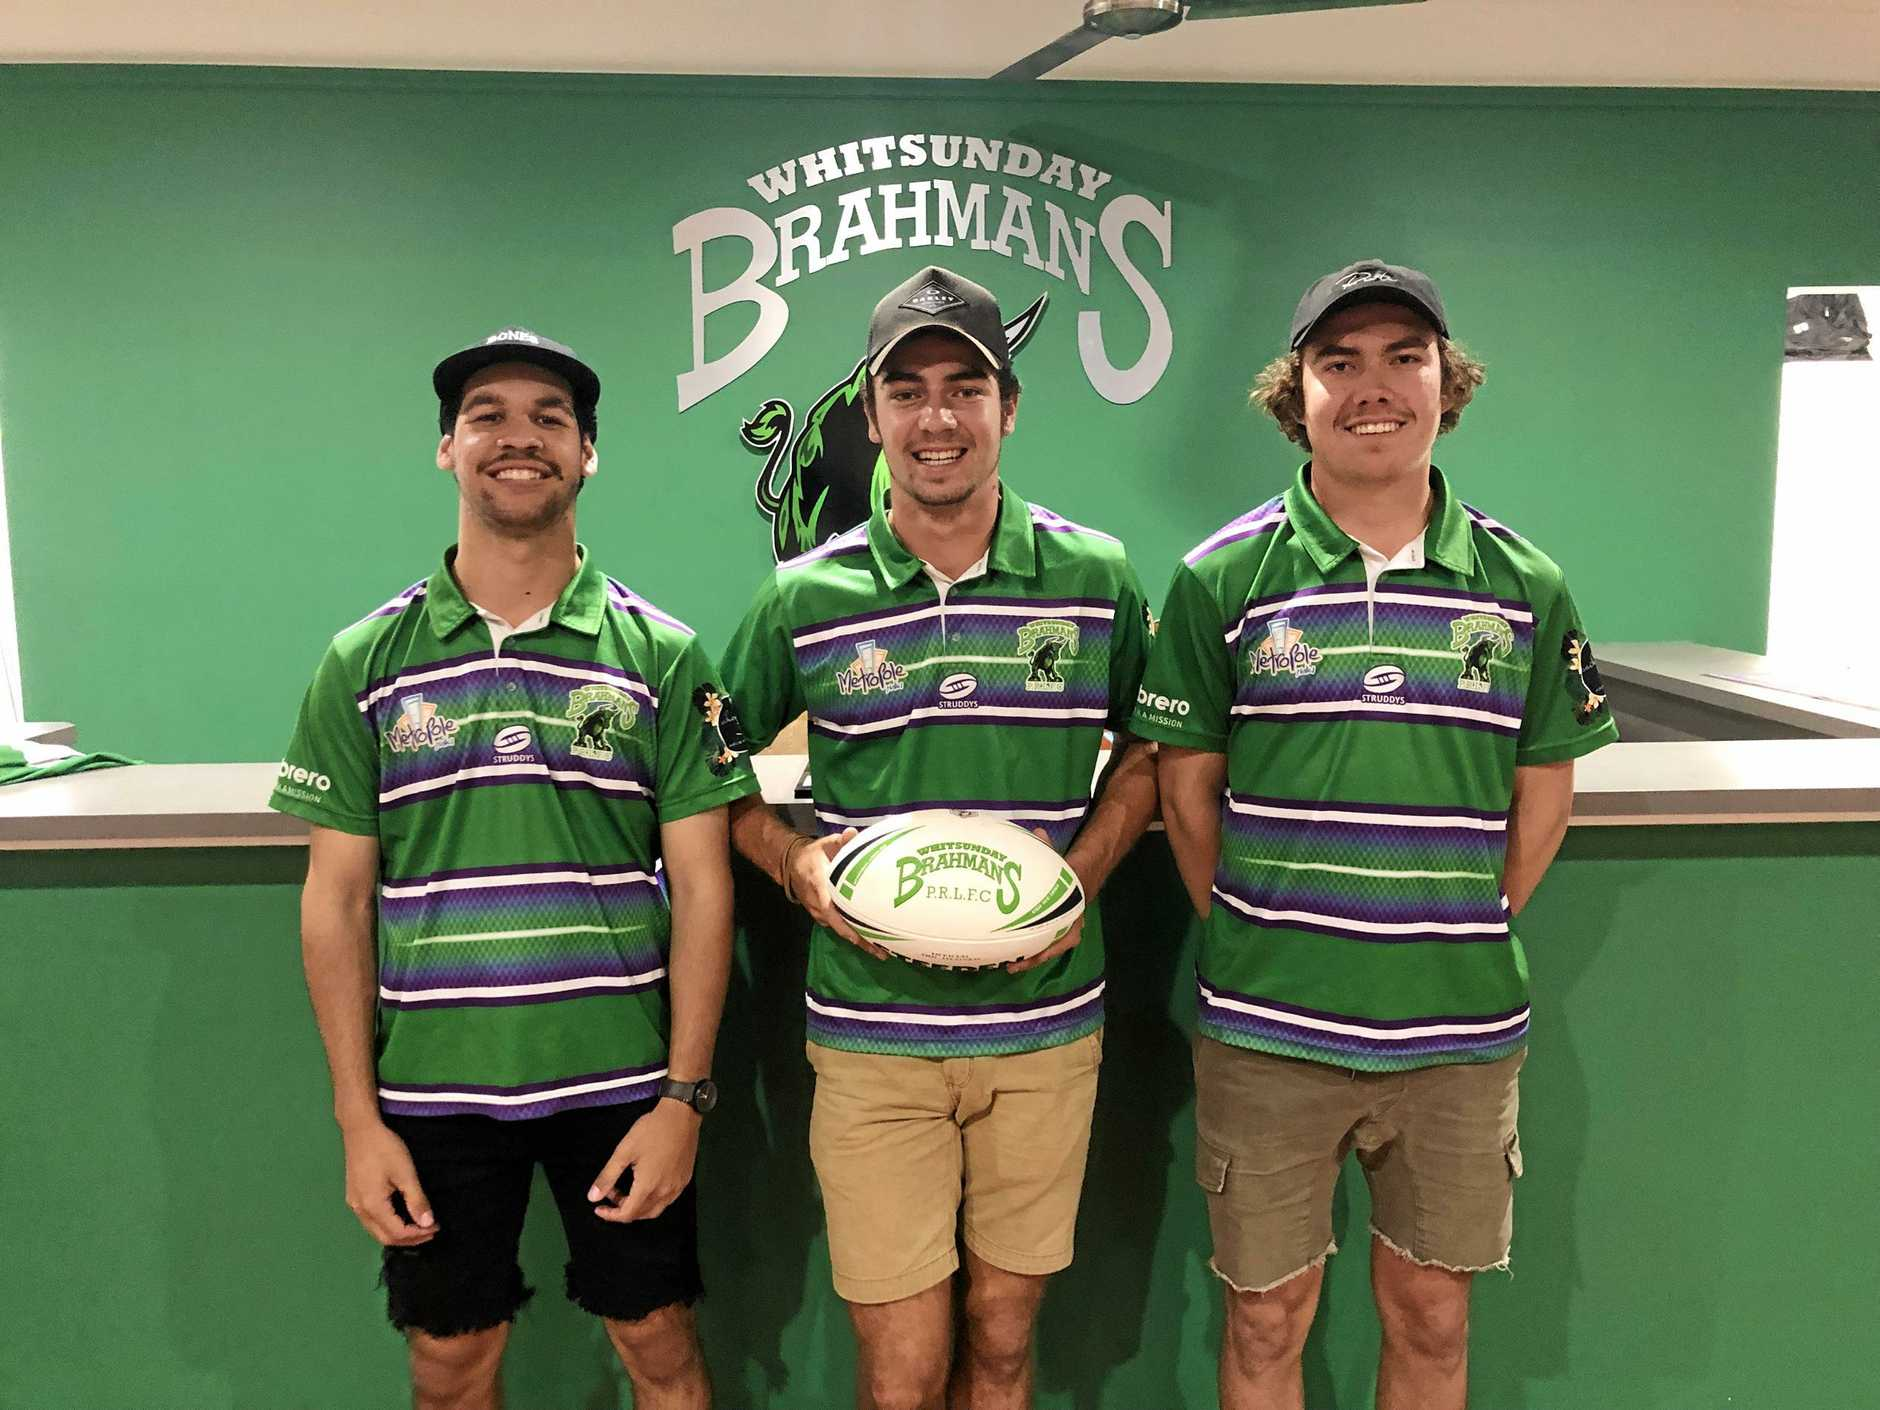 Whitsunday Brahmans U19's Ben Van Veen, Fletcher Turner and Campbell Cross have signed on with the 25-man A-grade squad ahead of the 2020 Mackay District Rugby League season.